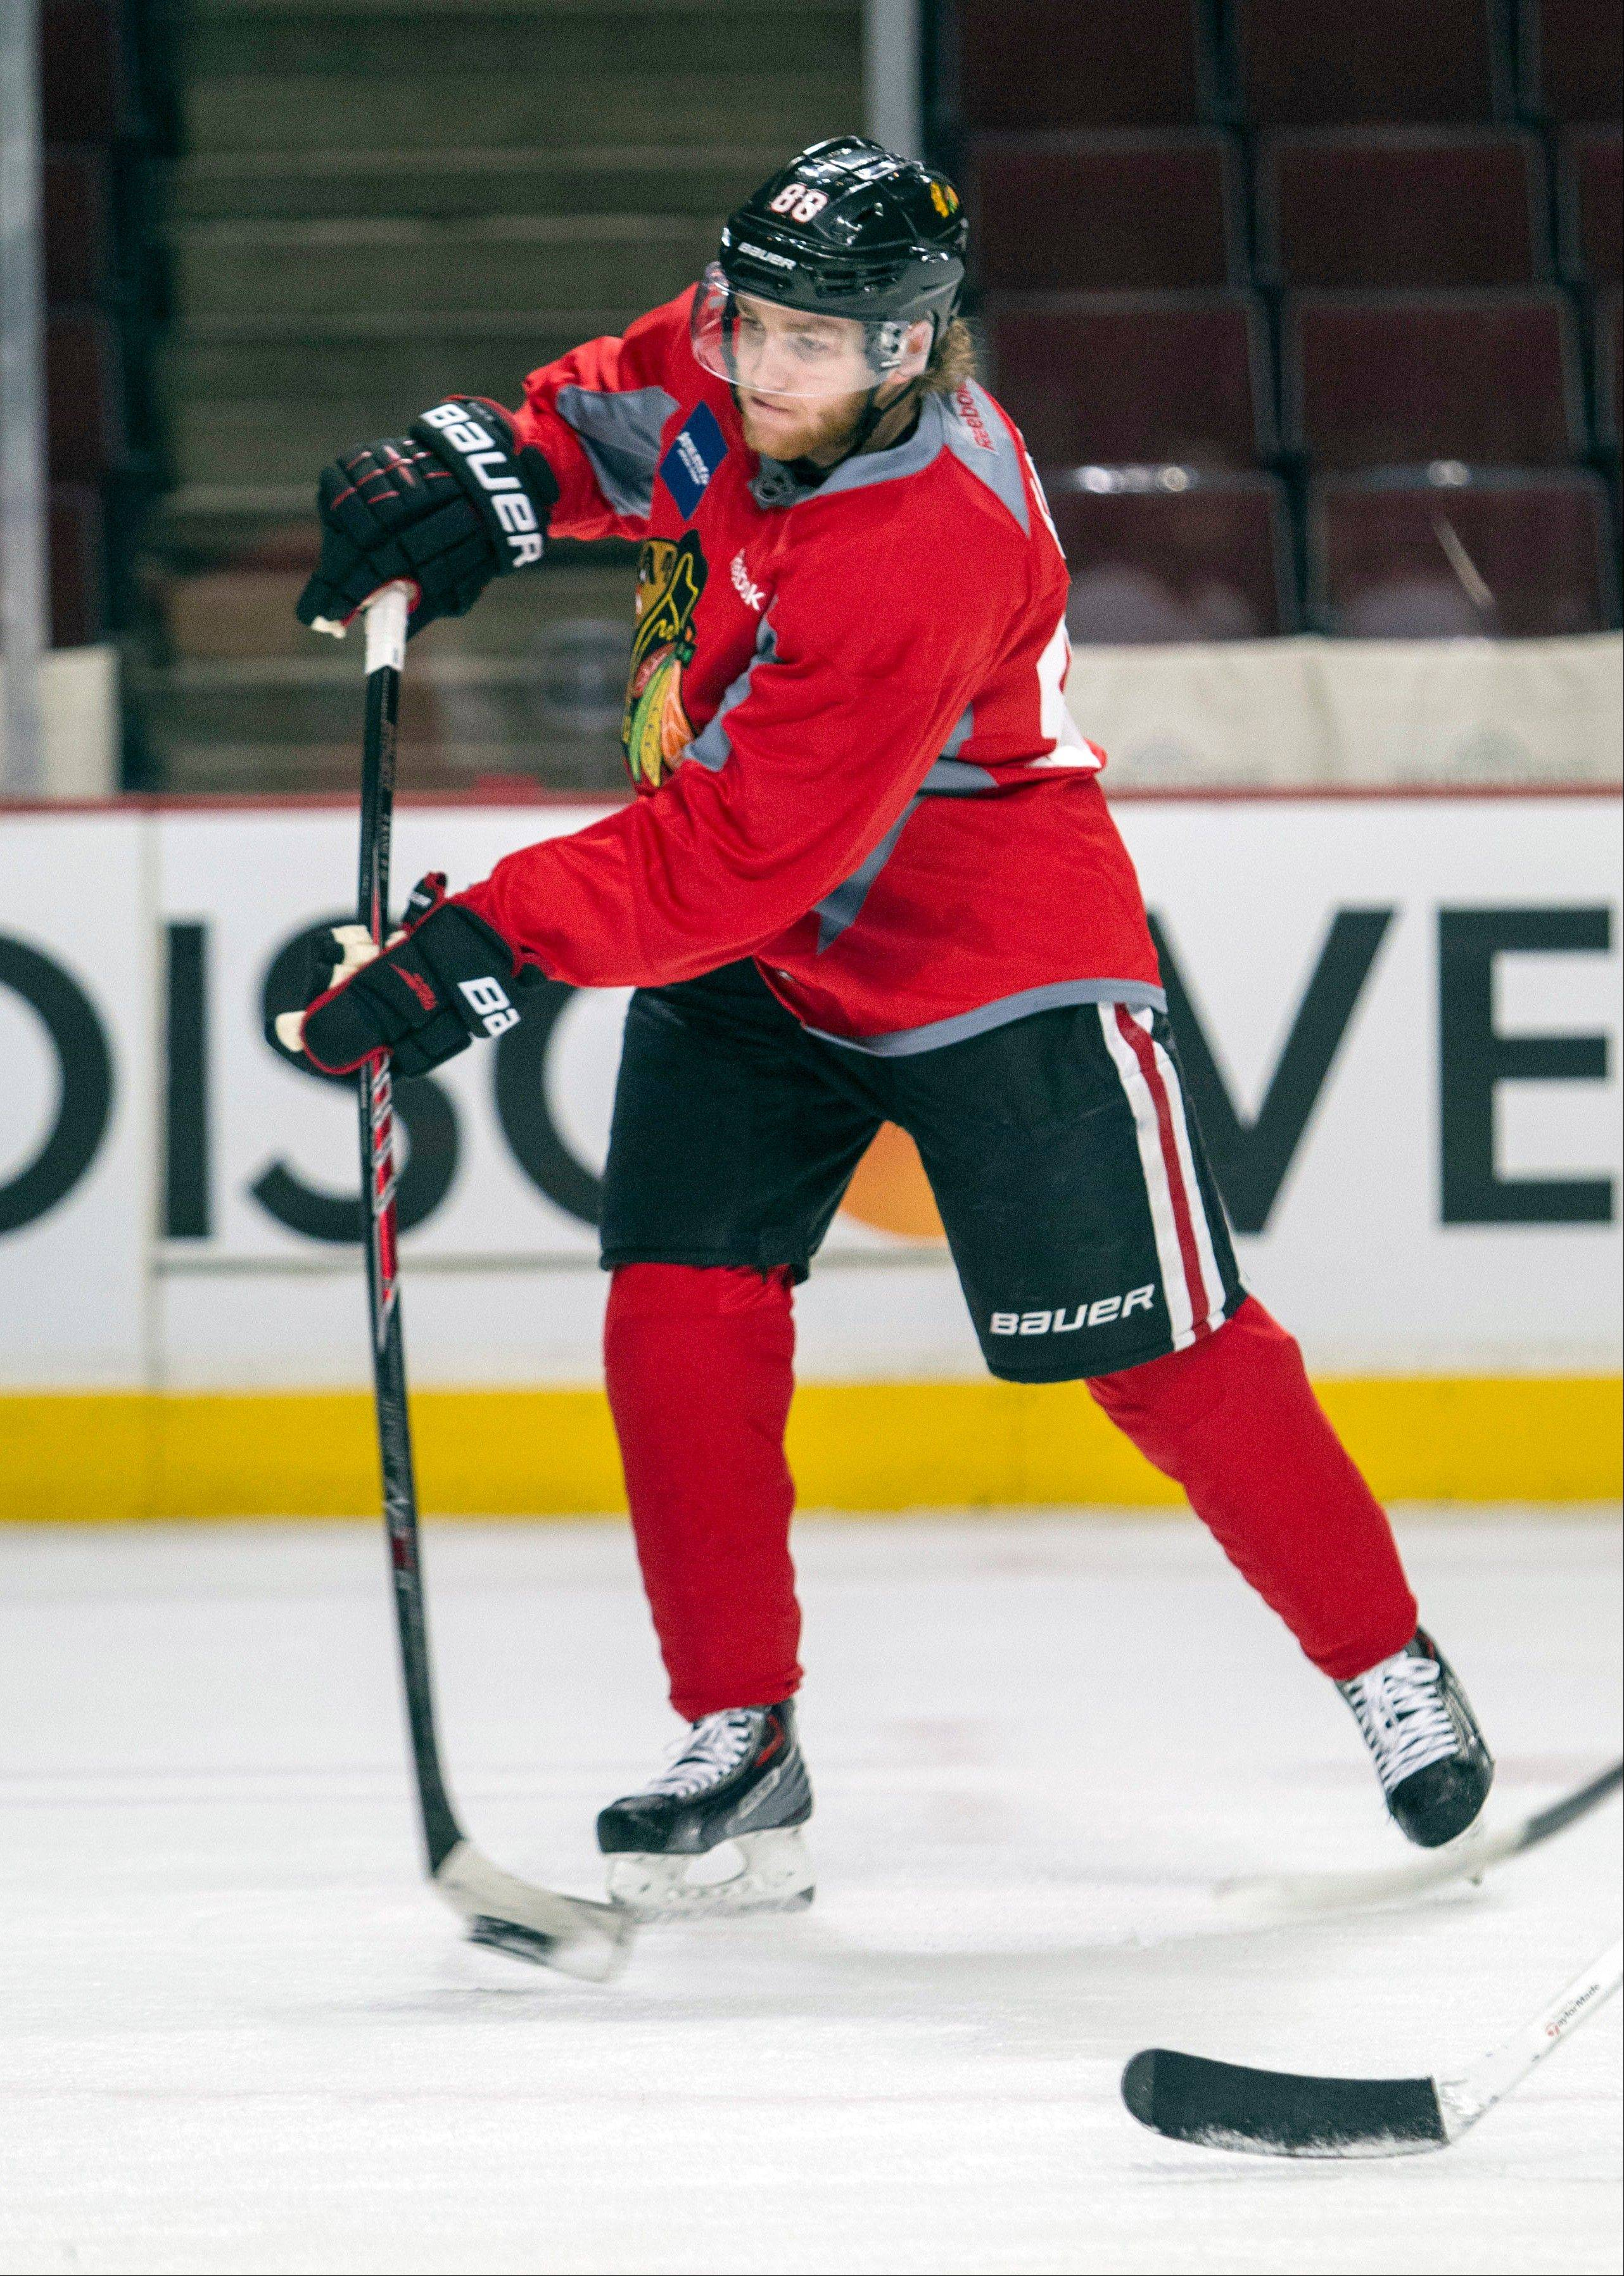 Blackhawks right wing Patrick Kane fires off a shot during Friday's practice.